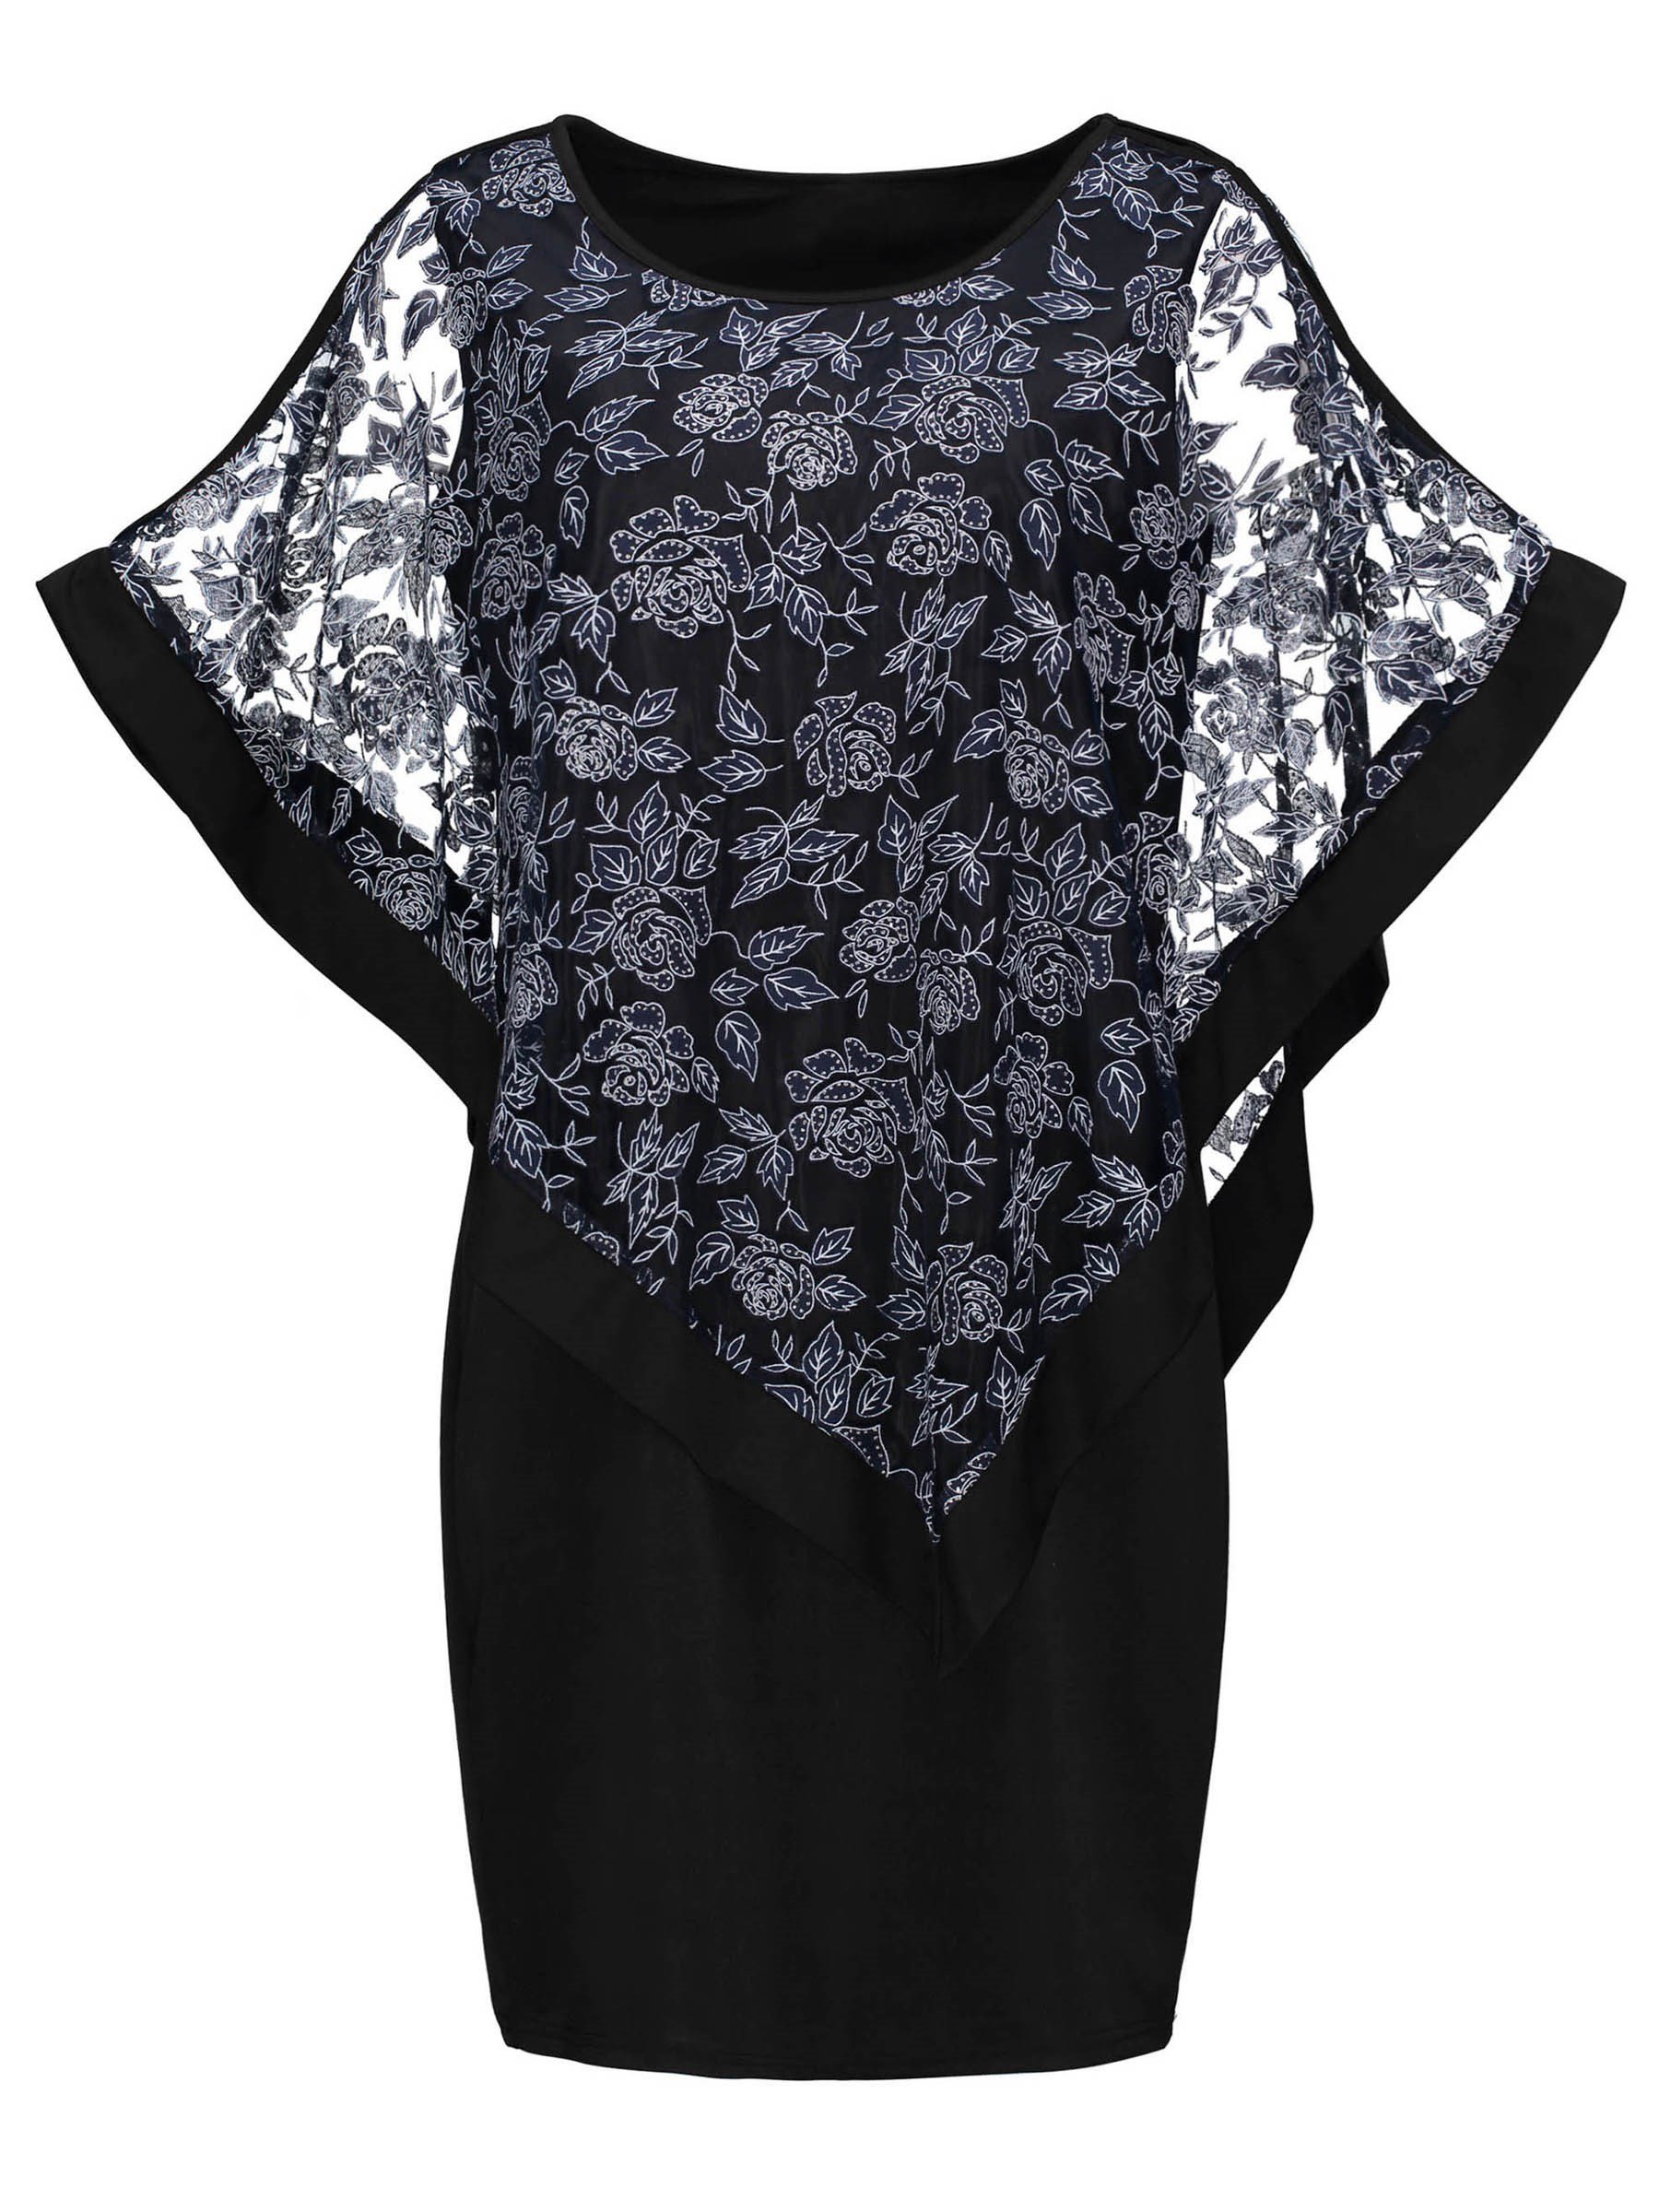 Ericdress Nude Floral Embroidery Batwing Sleeve Sheath Dress